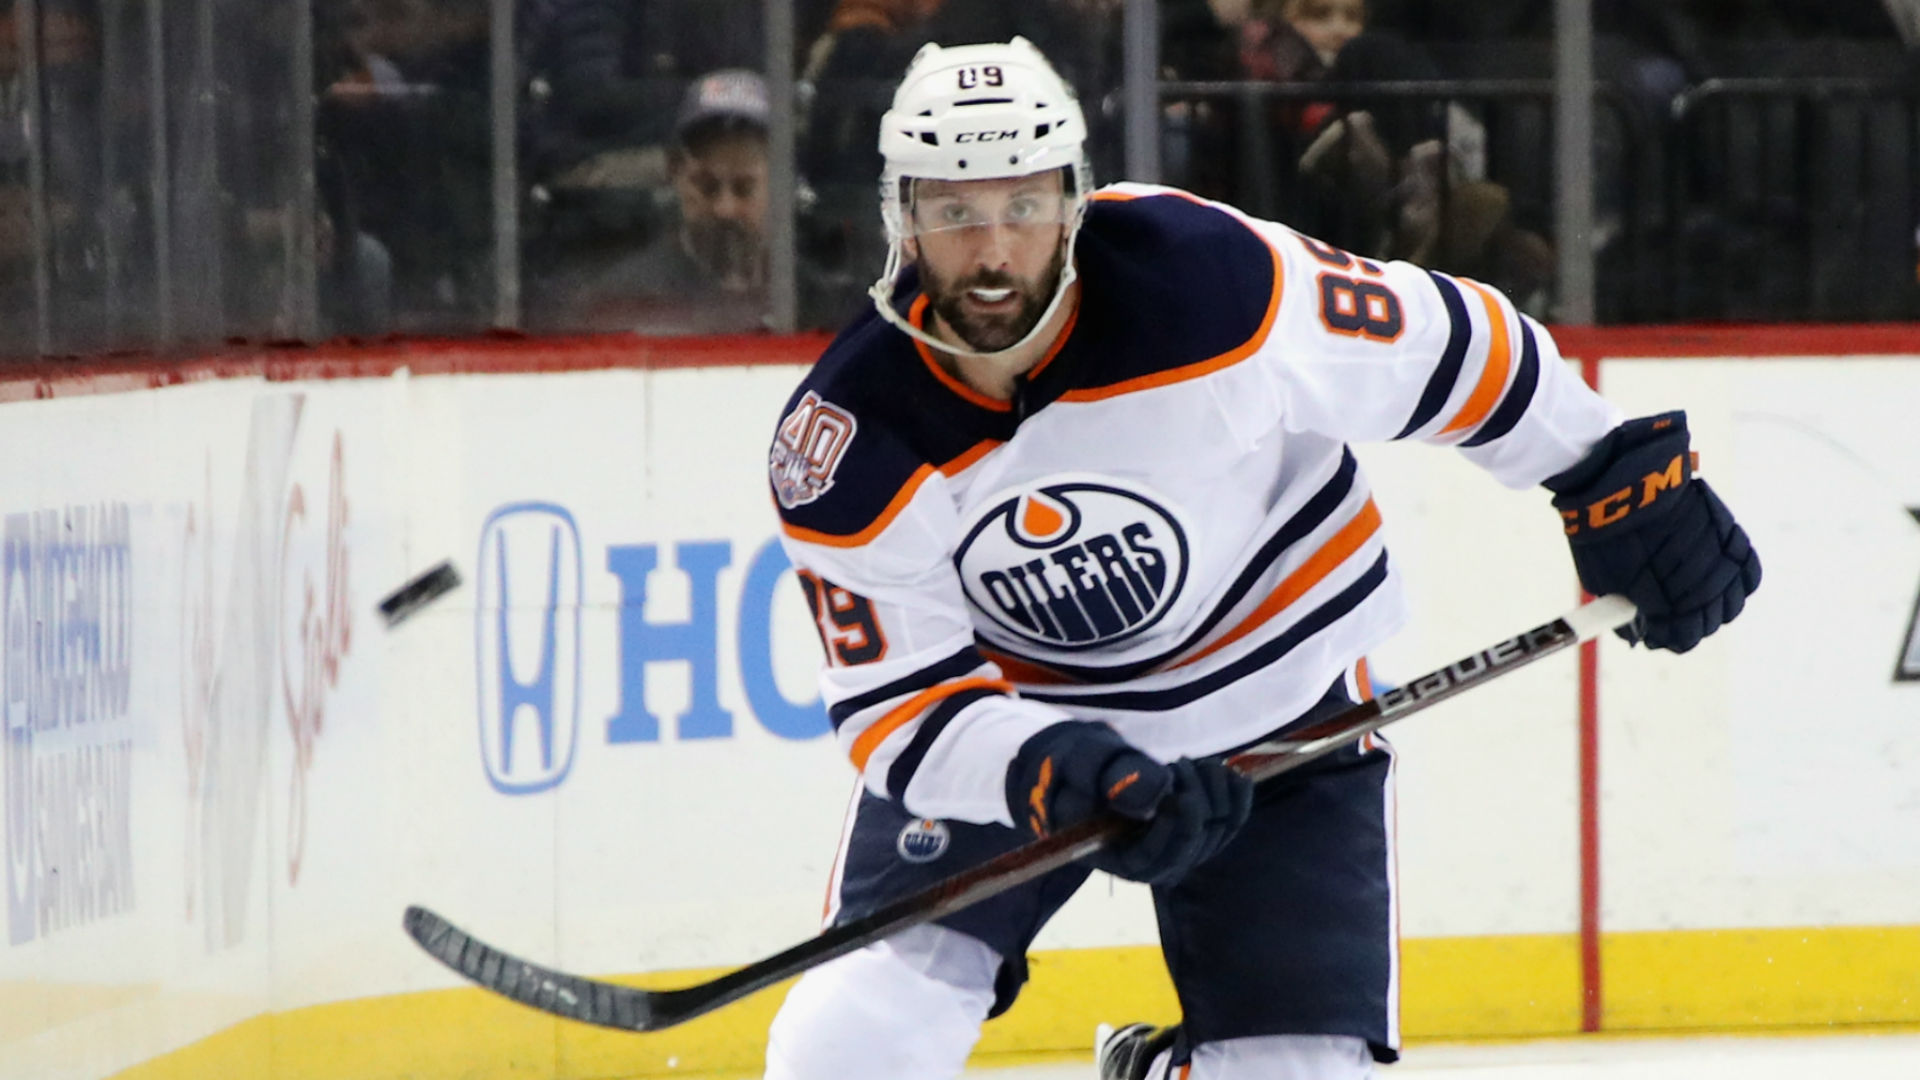 It has been a long road, but Sam Gagner 'excited' to be back with Oilers